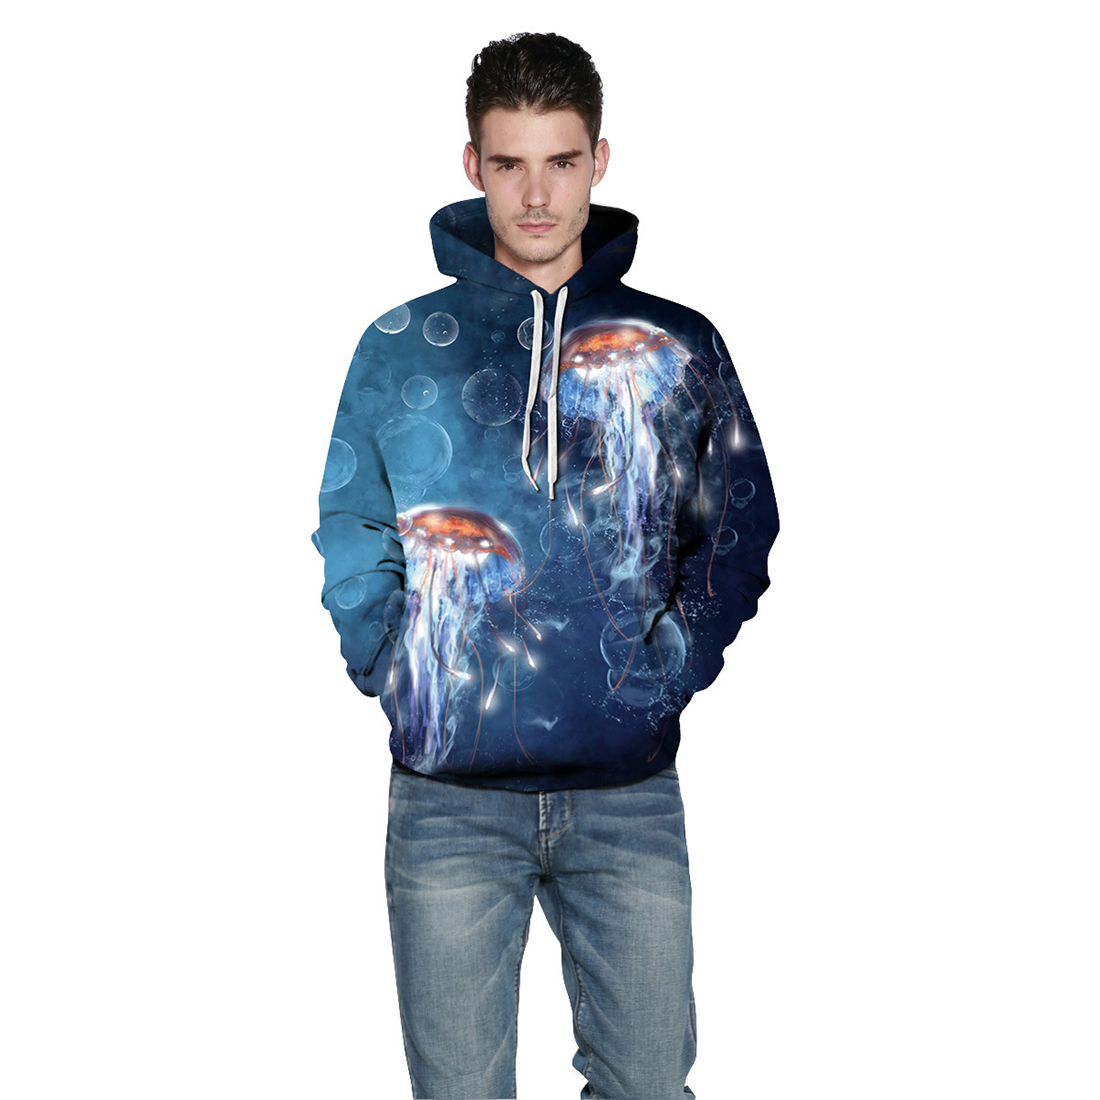 Men/Women New Casual Sweatshirts 3d Digital Jellyfish Print Fashion Thin Hoodies Pullovers With Big Pocket Hoody Tops